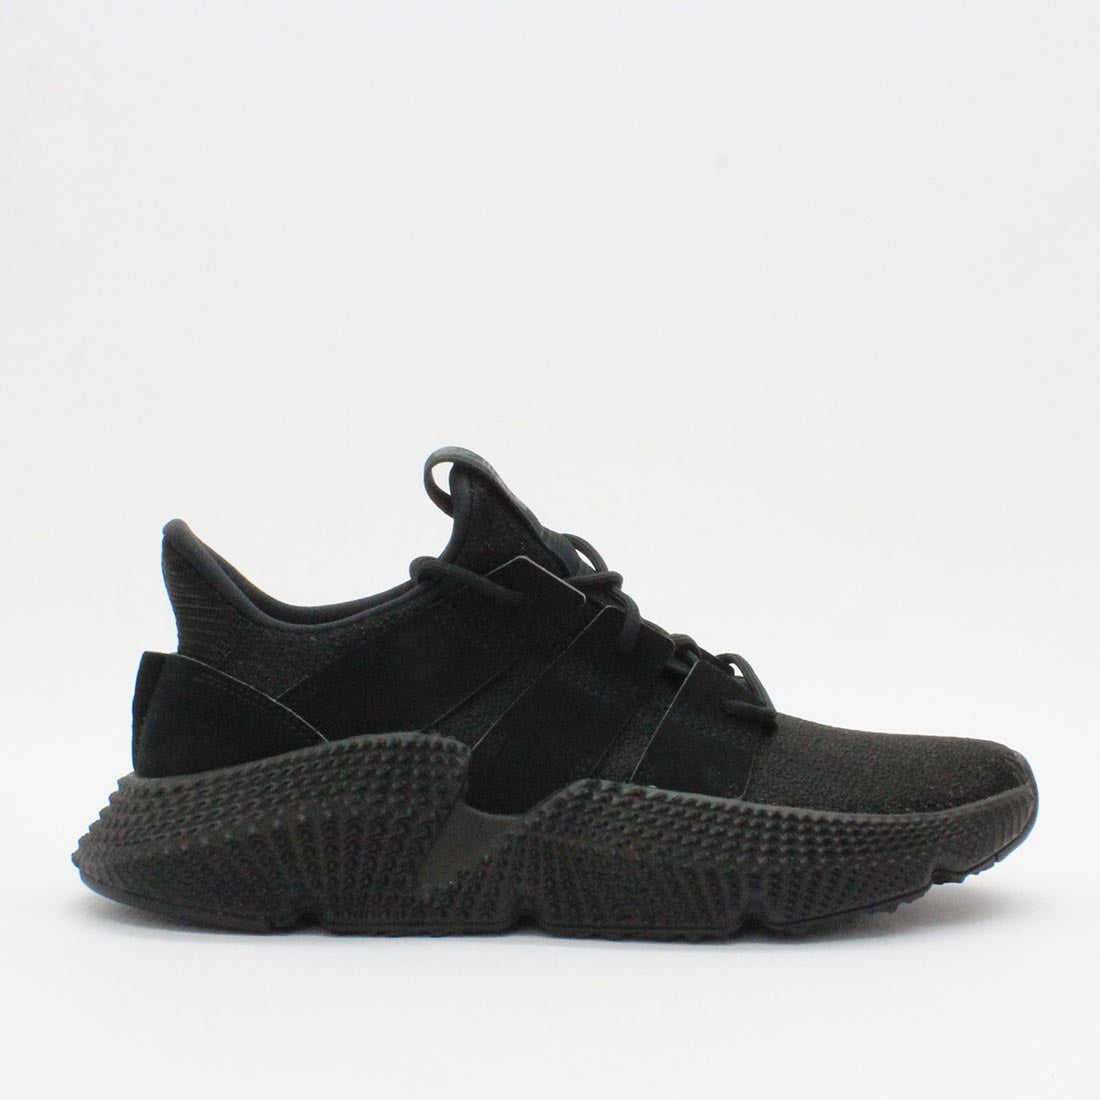 Adidas Originals Prophere Triple Black B37453